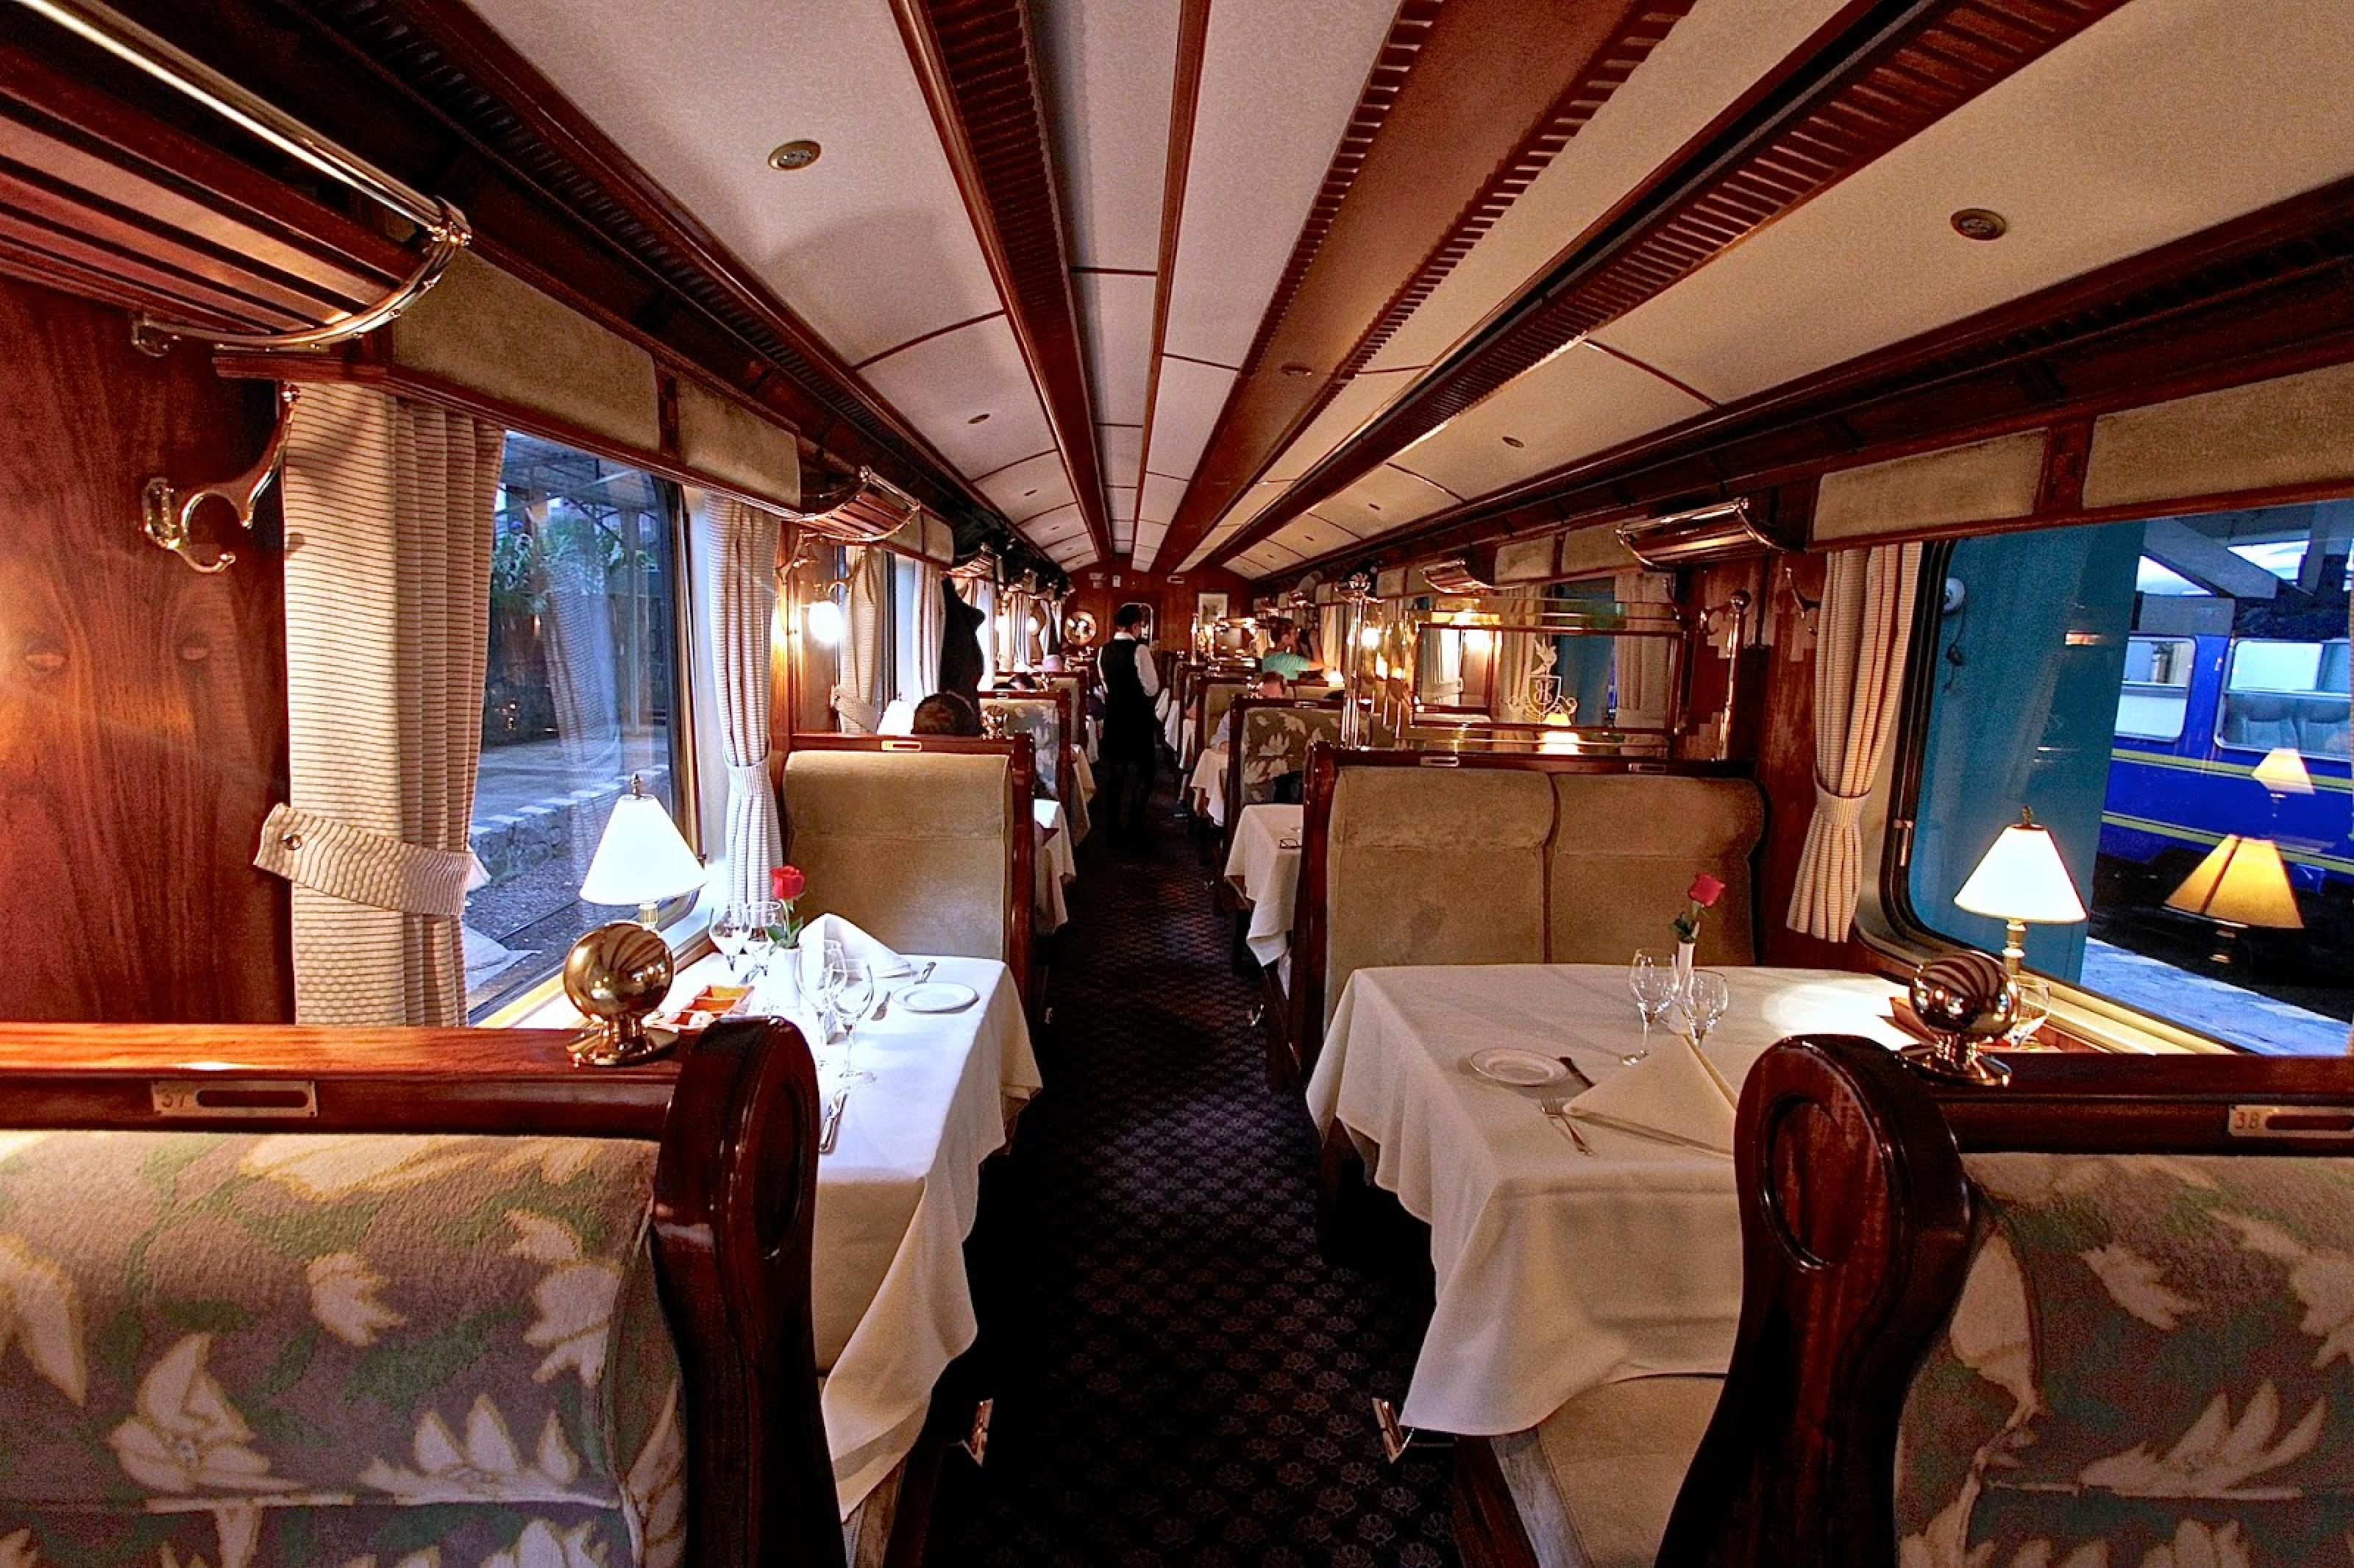 belmond online dating 100% free online dating in belmond 1,500,000 daily active members.